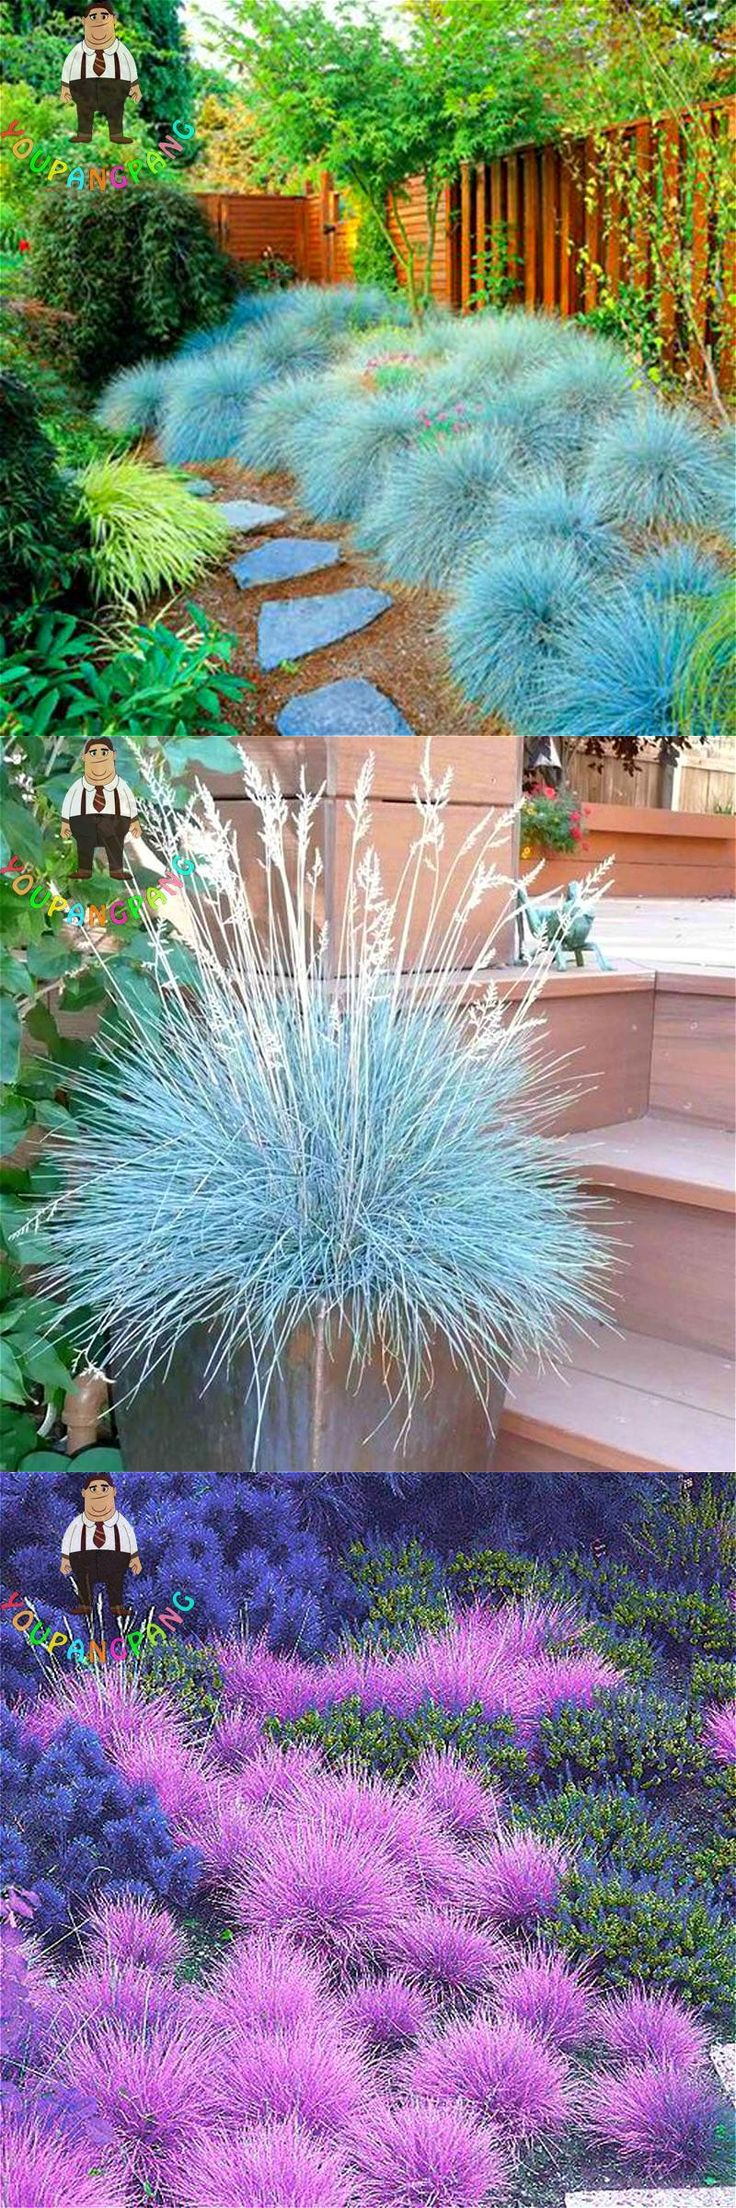 [Visit to Buy] 100 Graines Blue Fescue Grass Seeds Indoor Garden Festuca Glauca Perennial Hardy Ornamental Plants Easy To Grow Seed * Sementes #Advertisement